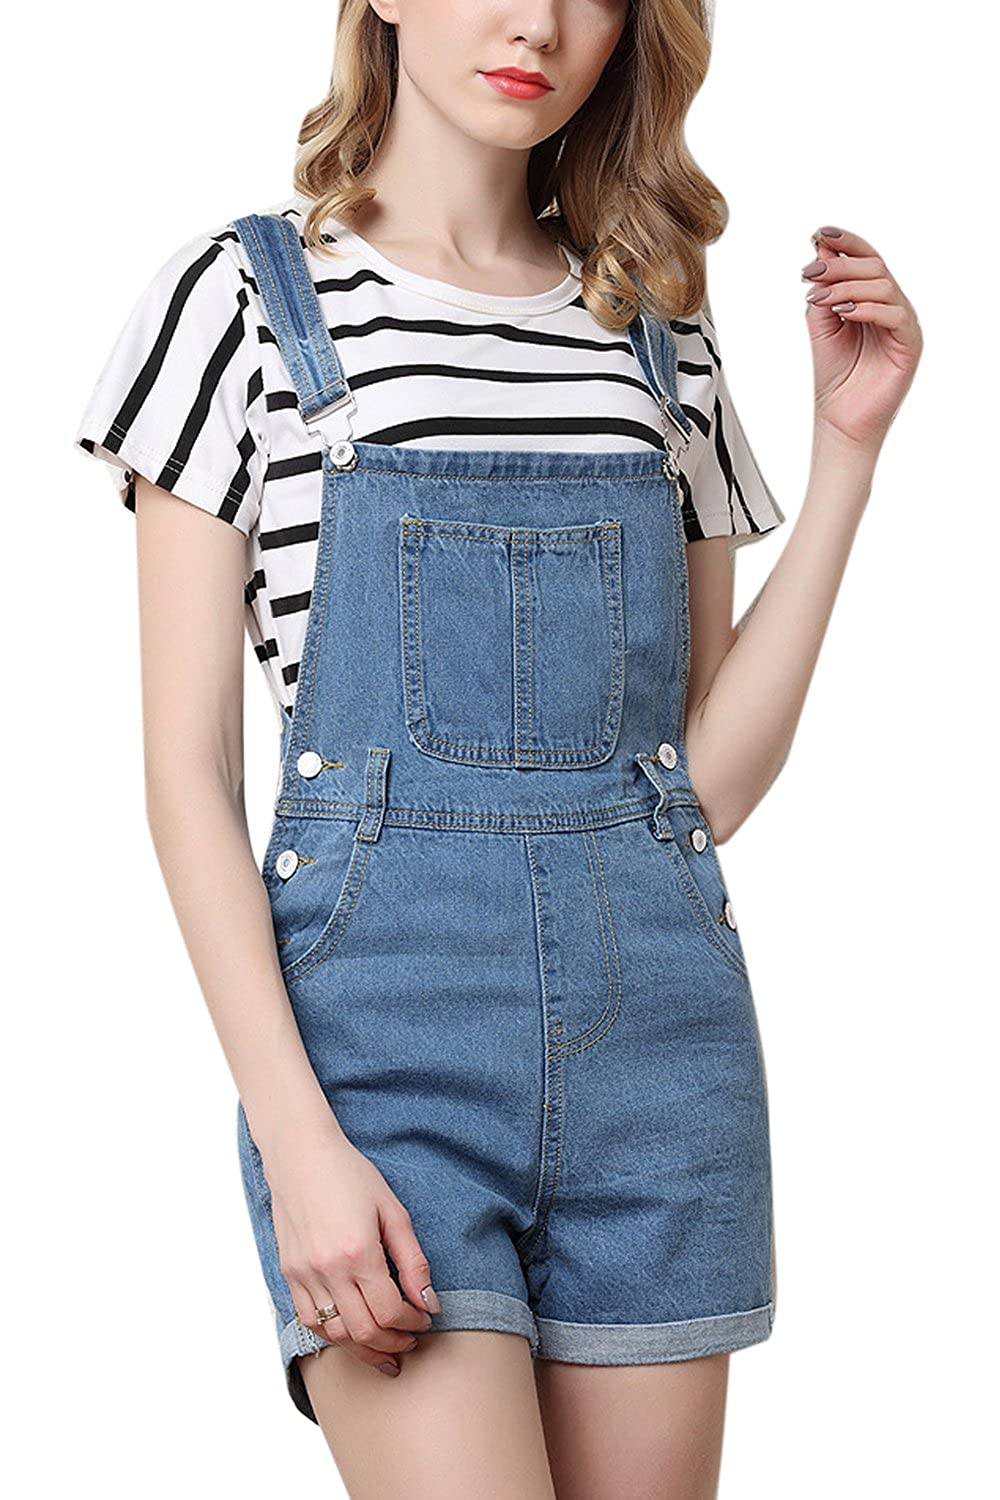 Suvotimo Women Summer Casual Denim Overall Shorts Rompers Plus Size CAMEG1302